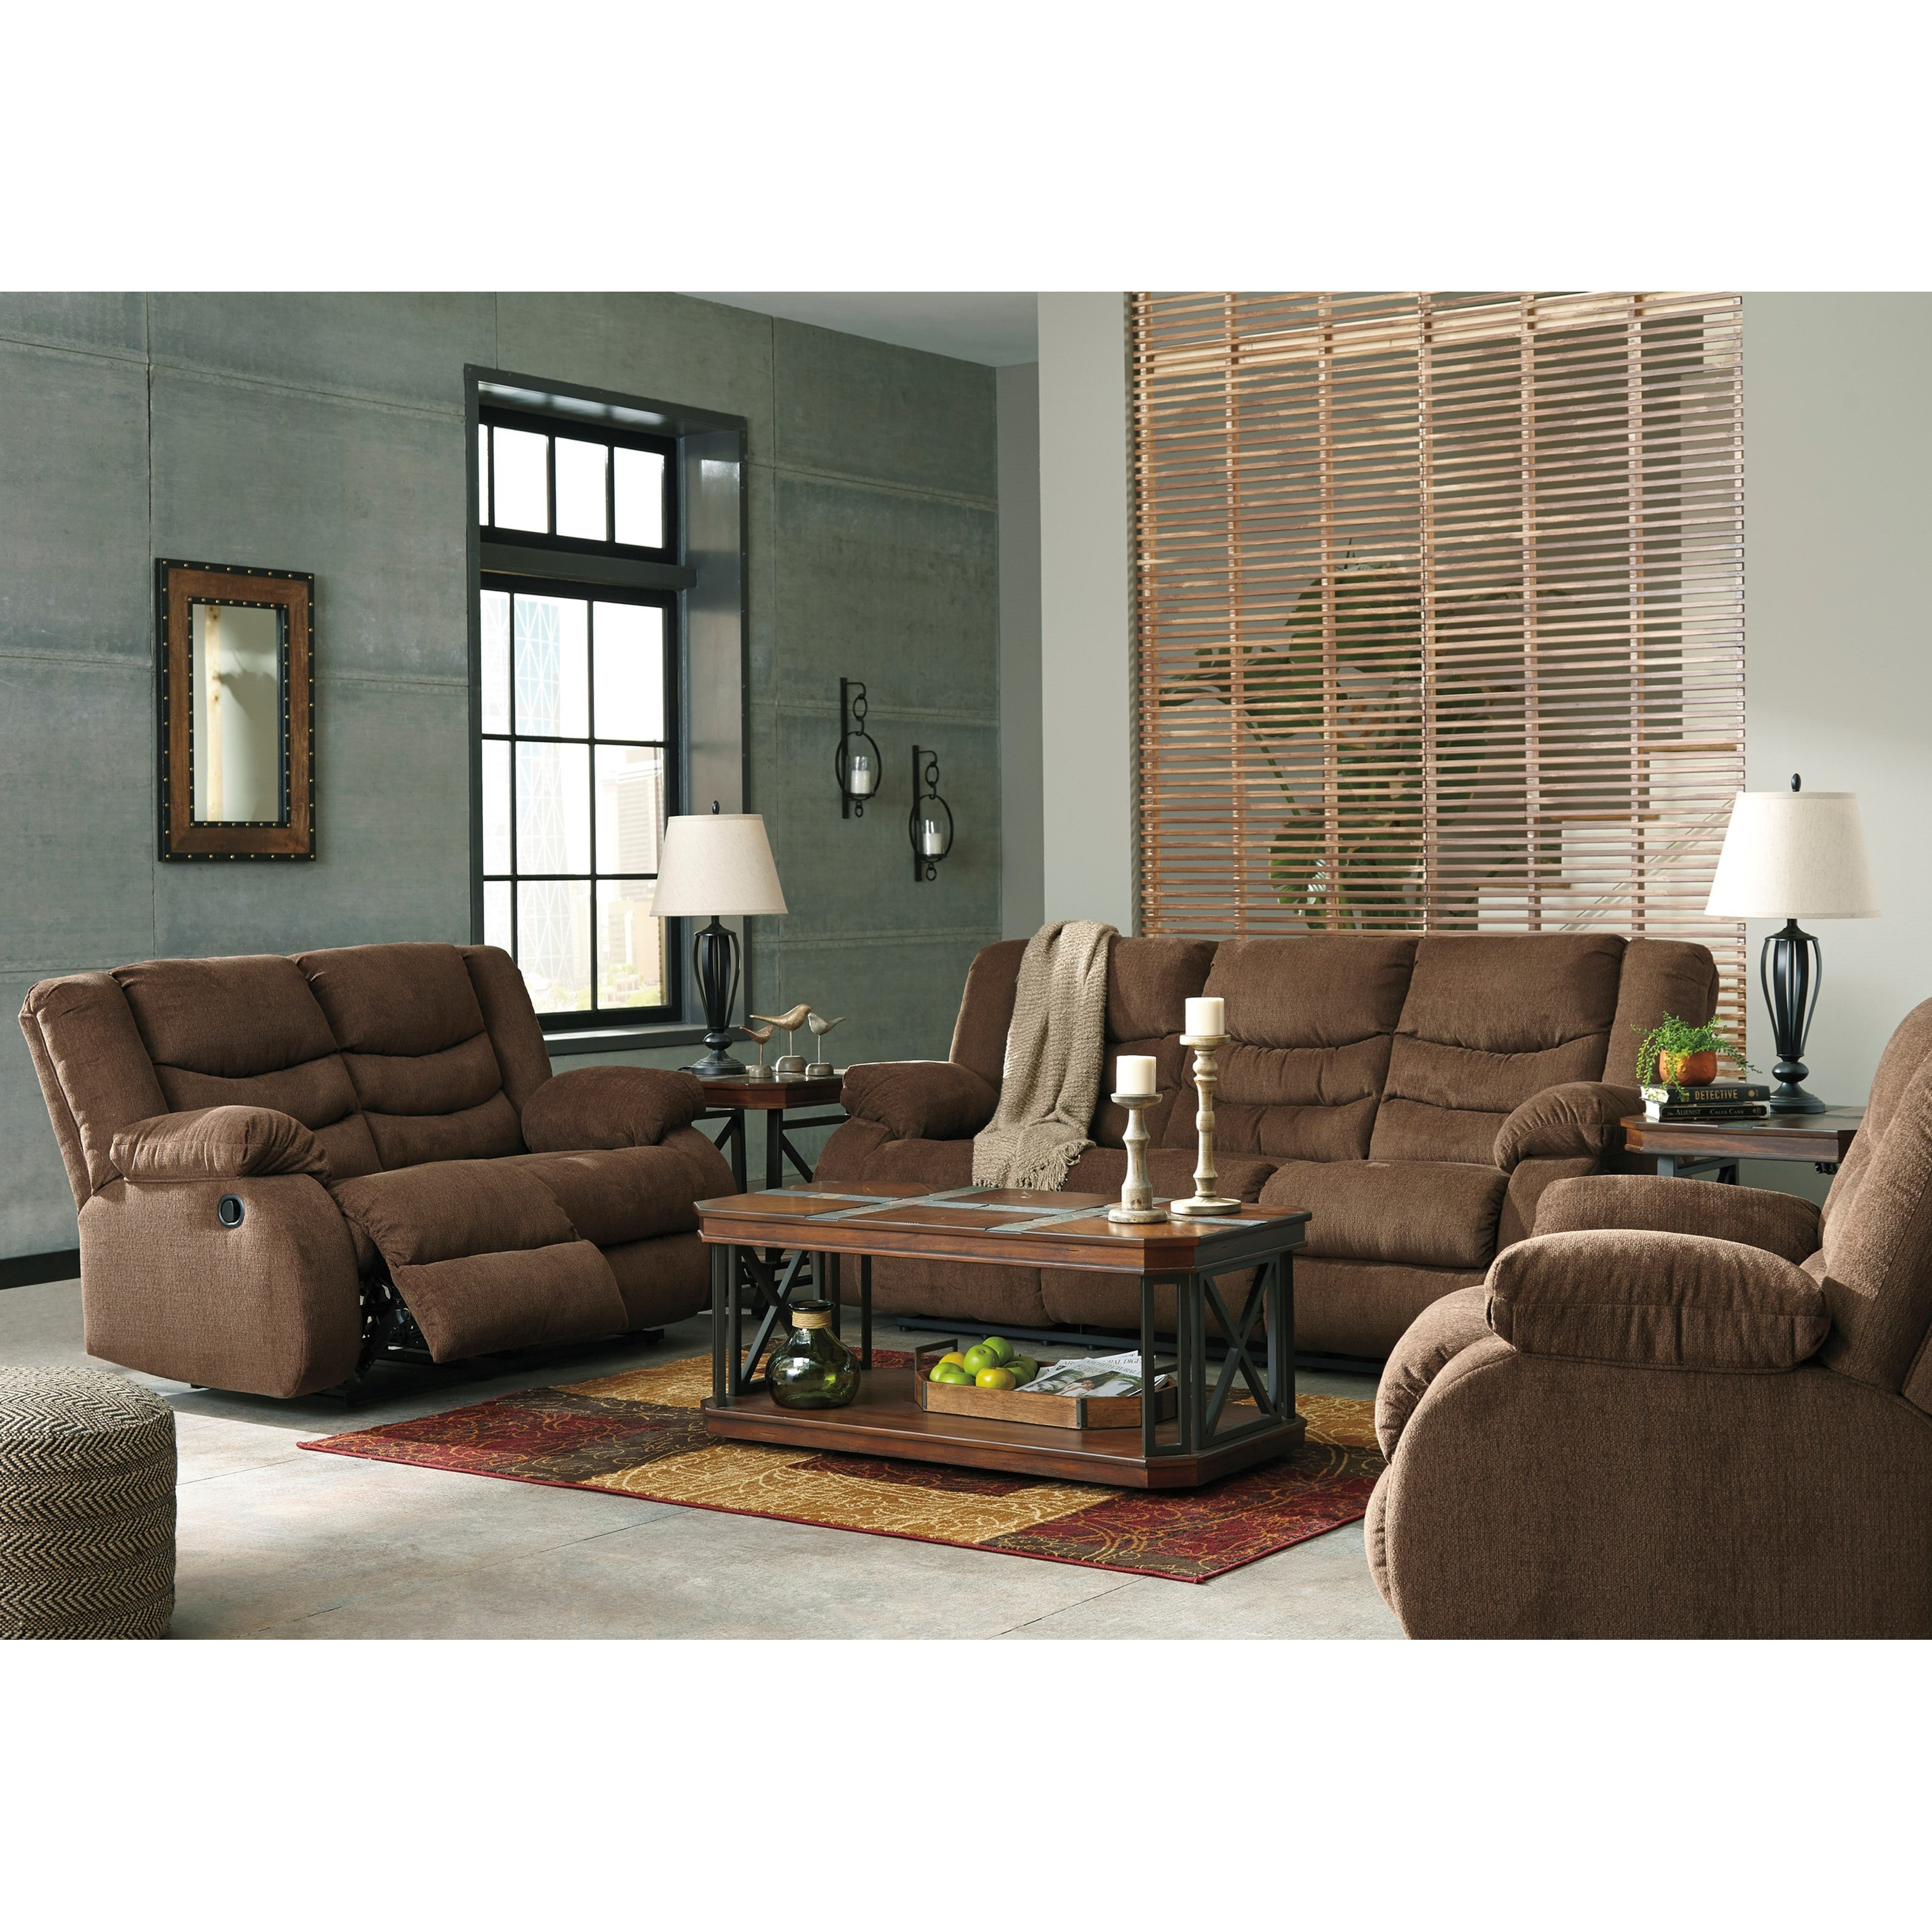 Tulen Reclining Living Room Group by Signature Design by Ashley at Furniture Barn